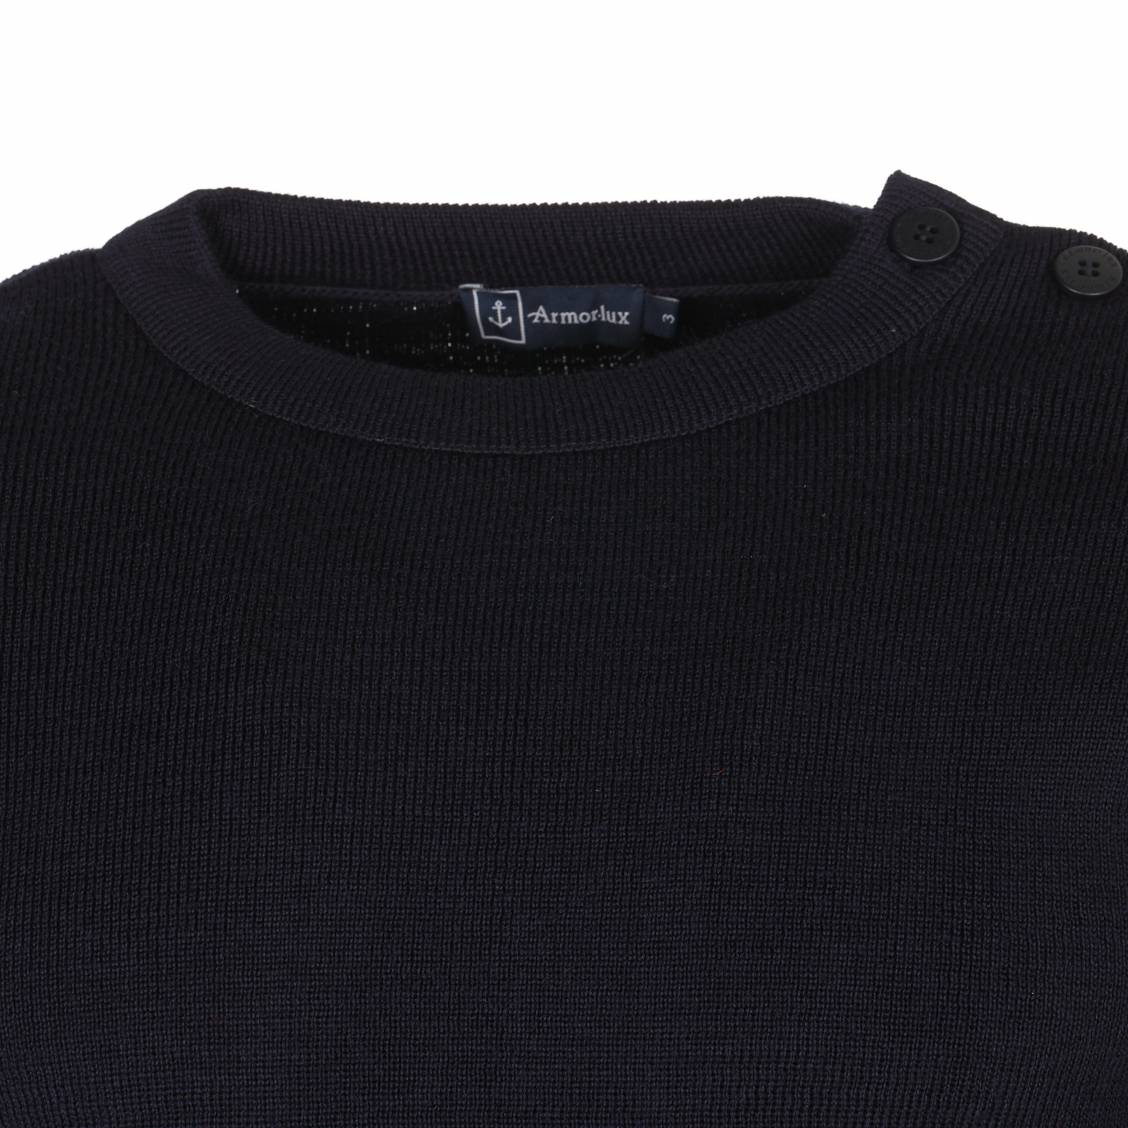 Souvent Pull Marin Fouesnant Armor lux 100% laine navy | Rue Des Hommes QW44